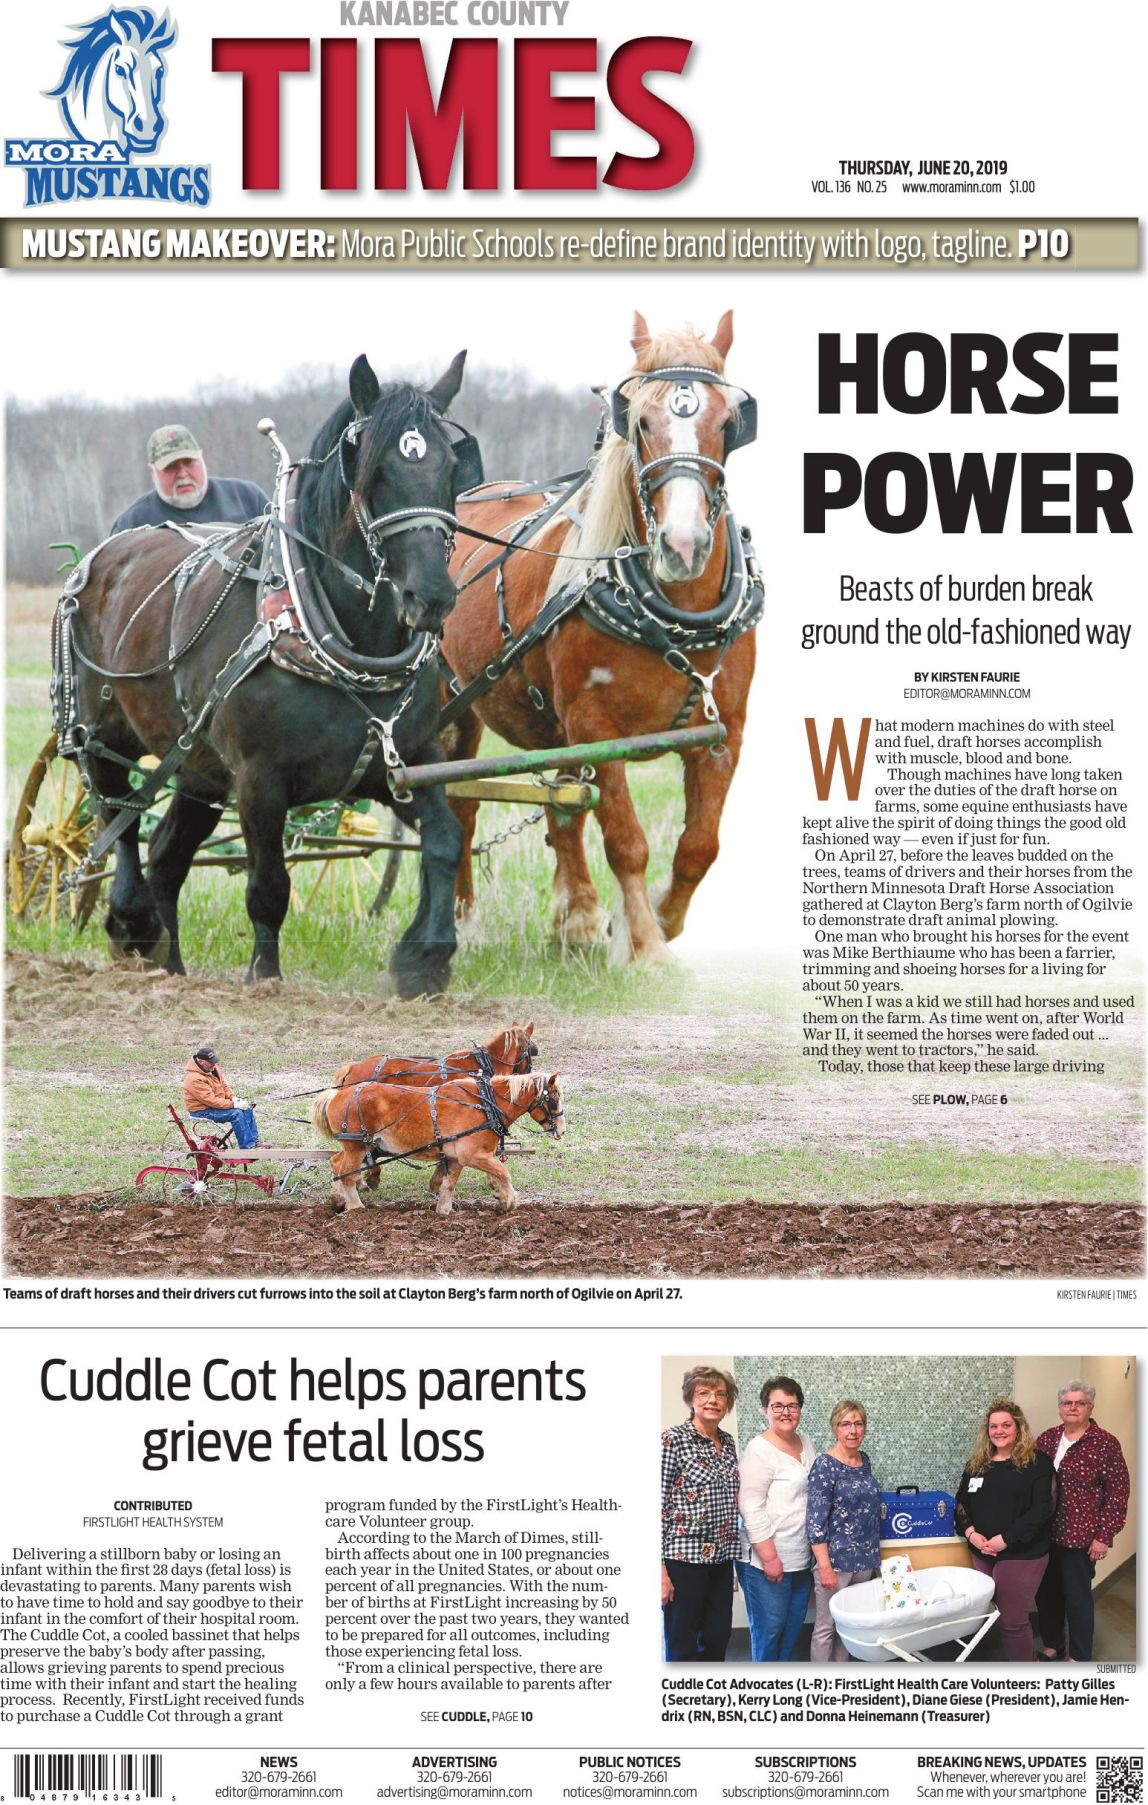 Kanabec County Times E-edition, June 20, 2019